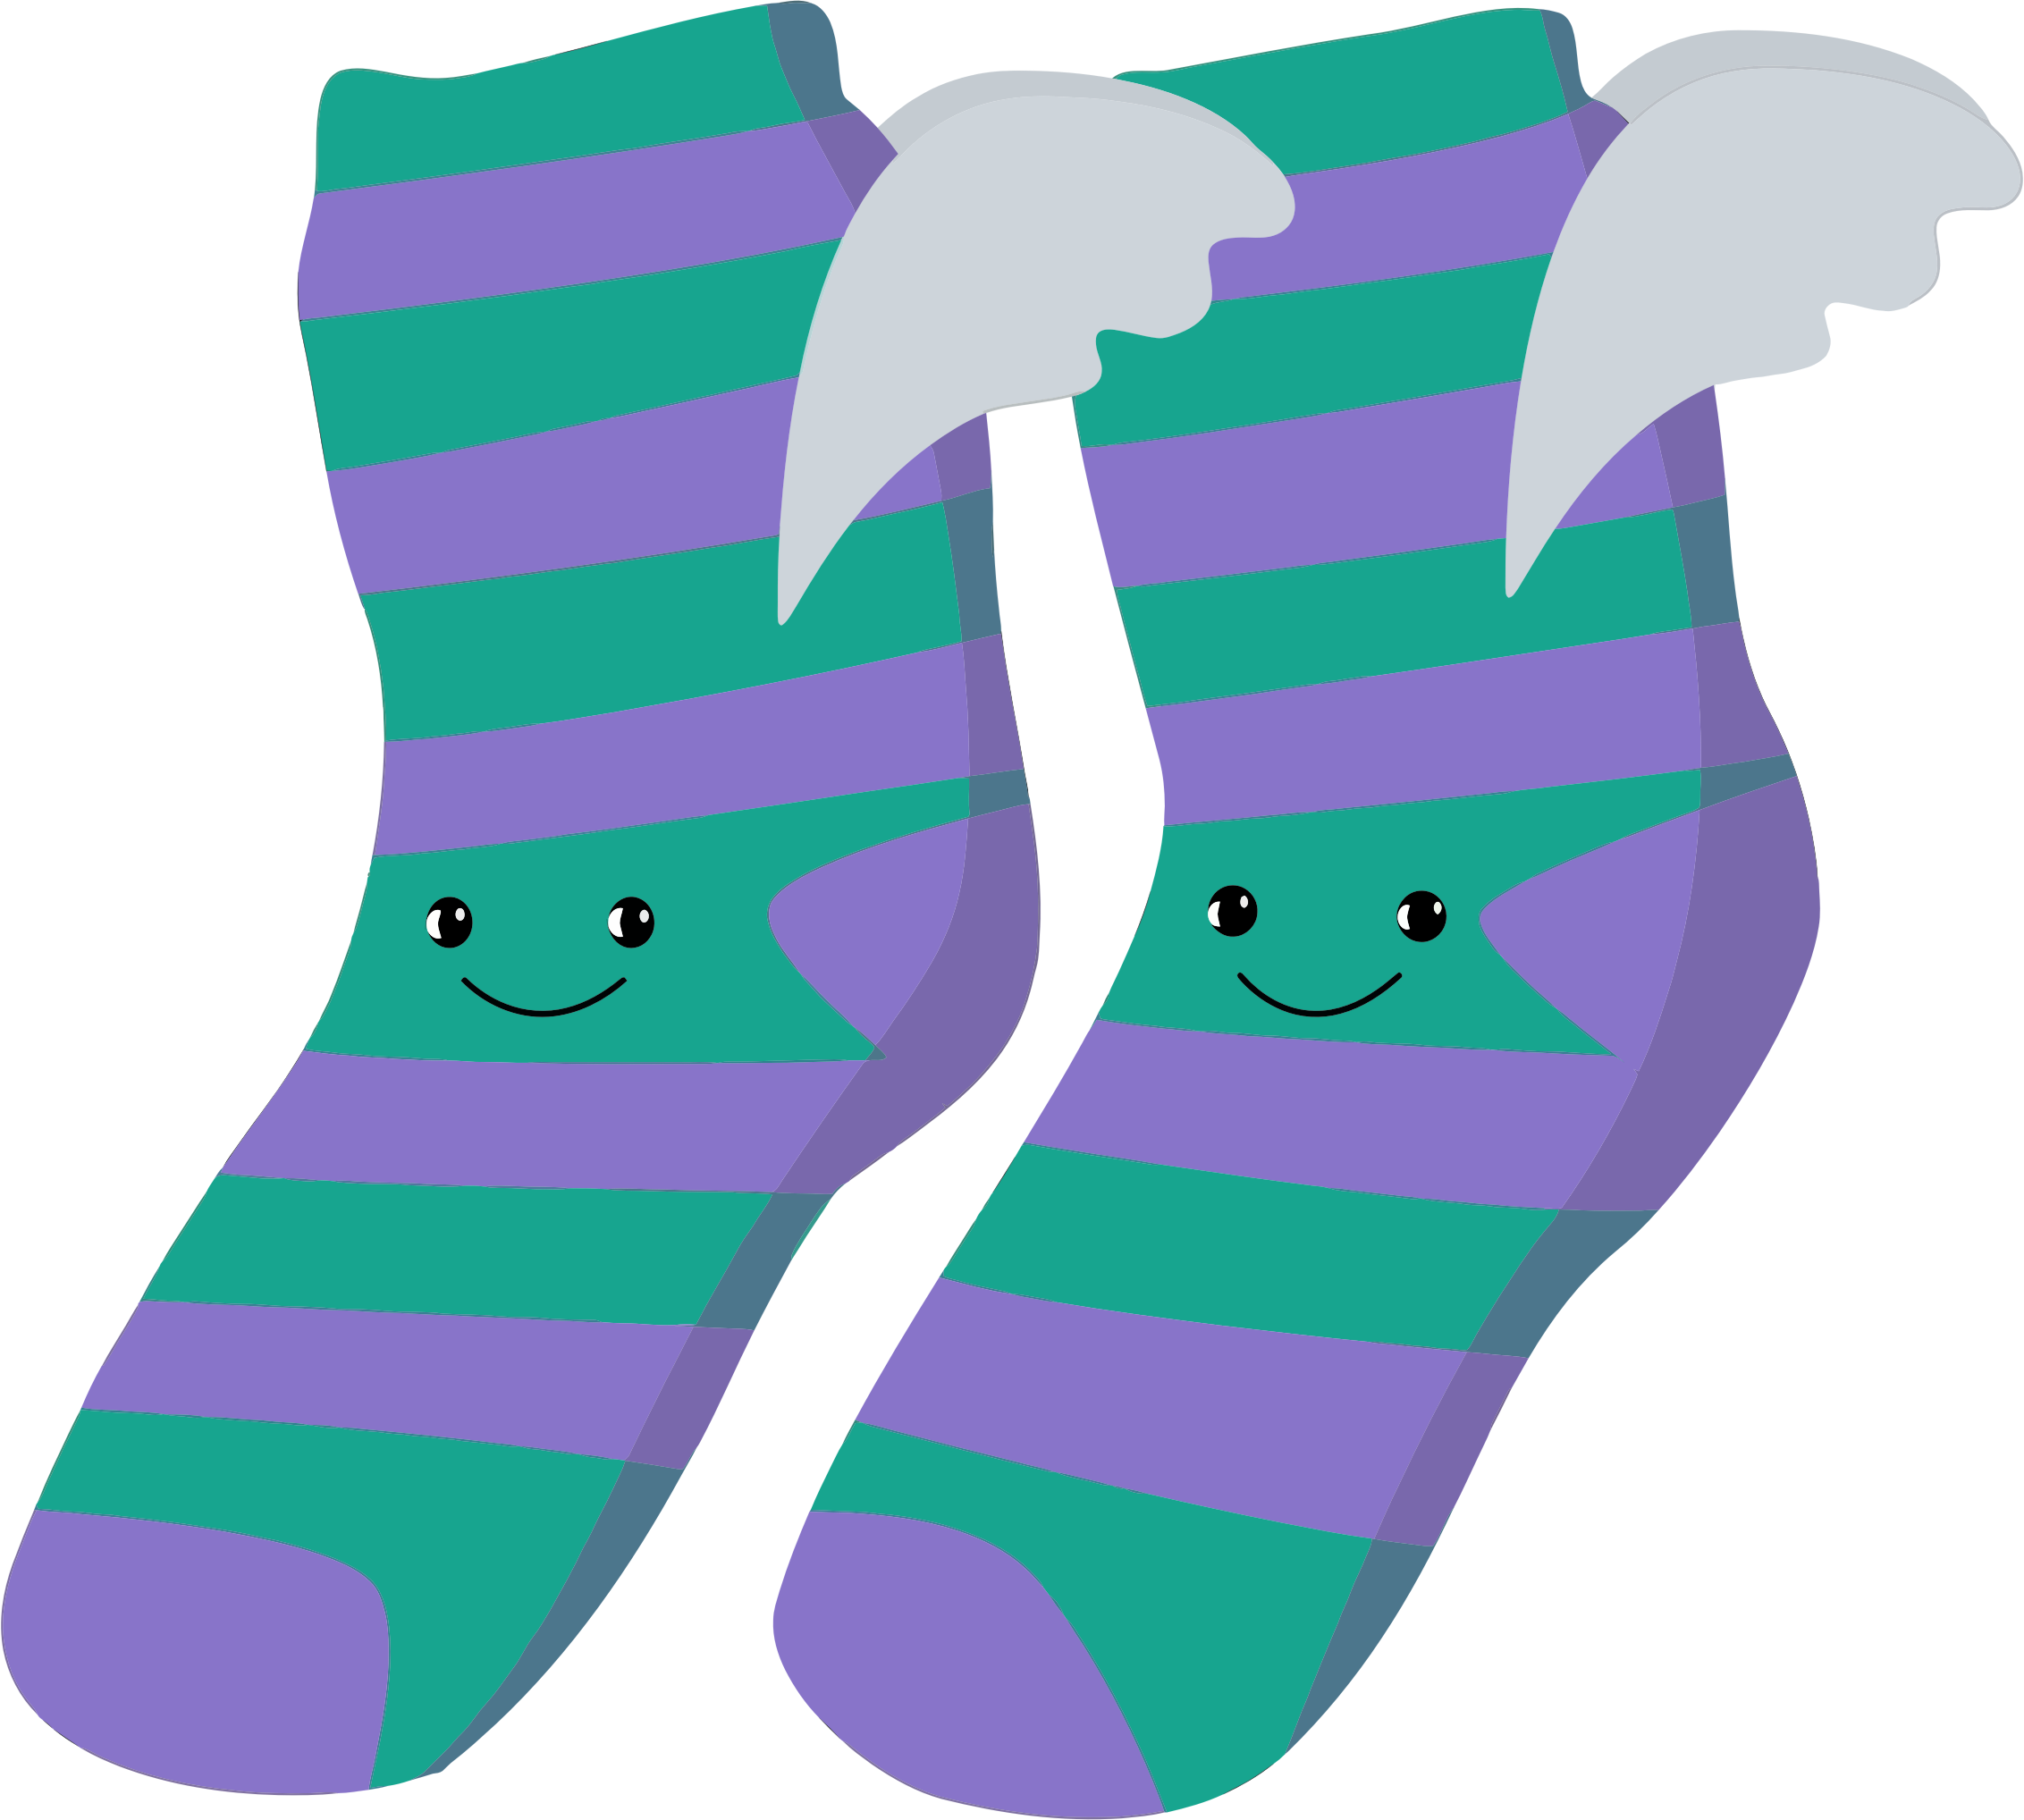 Socks clipart winged. Anthropomorphic big image png